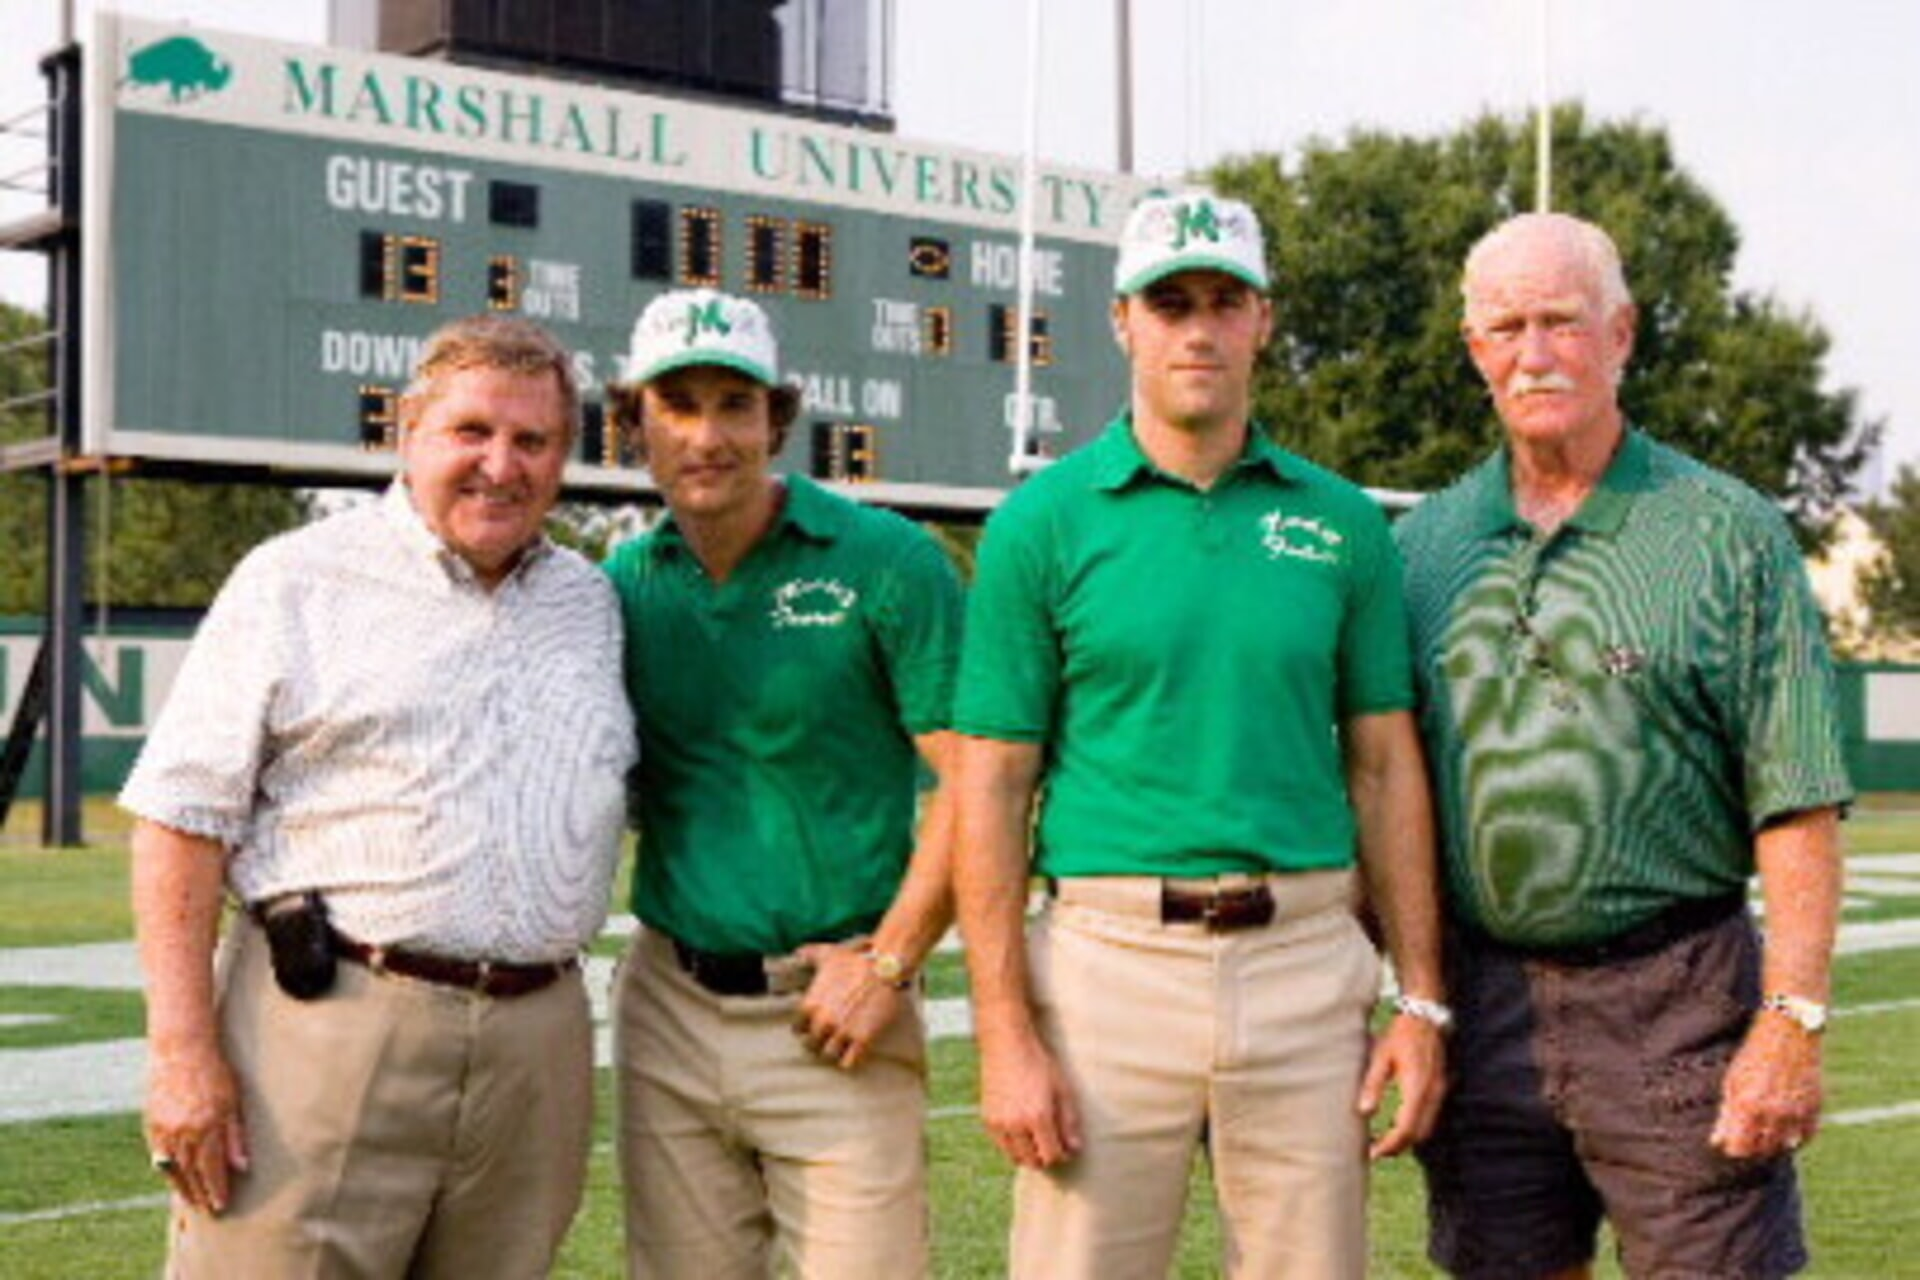 We Are Marshall - Image 30